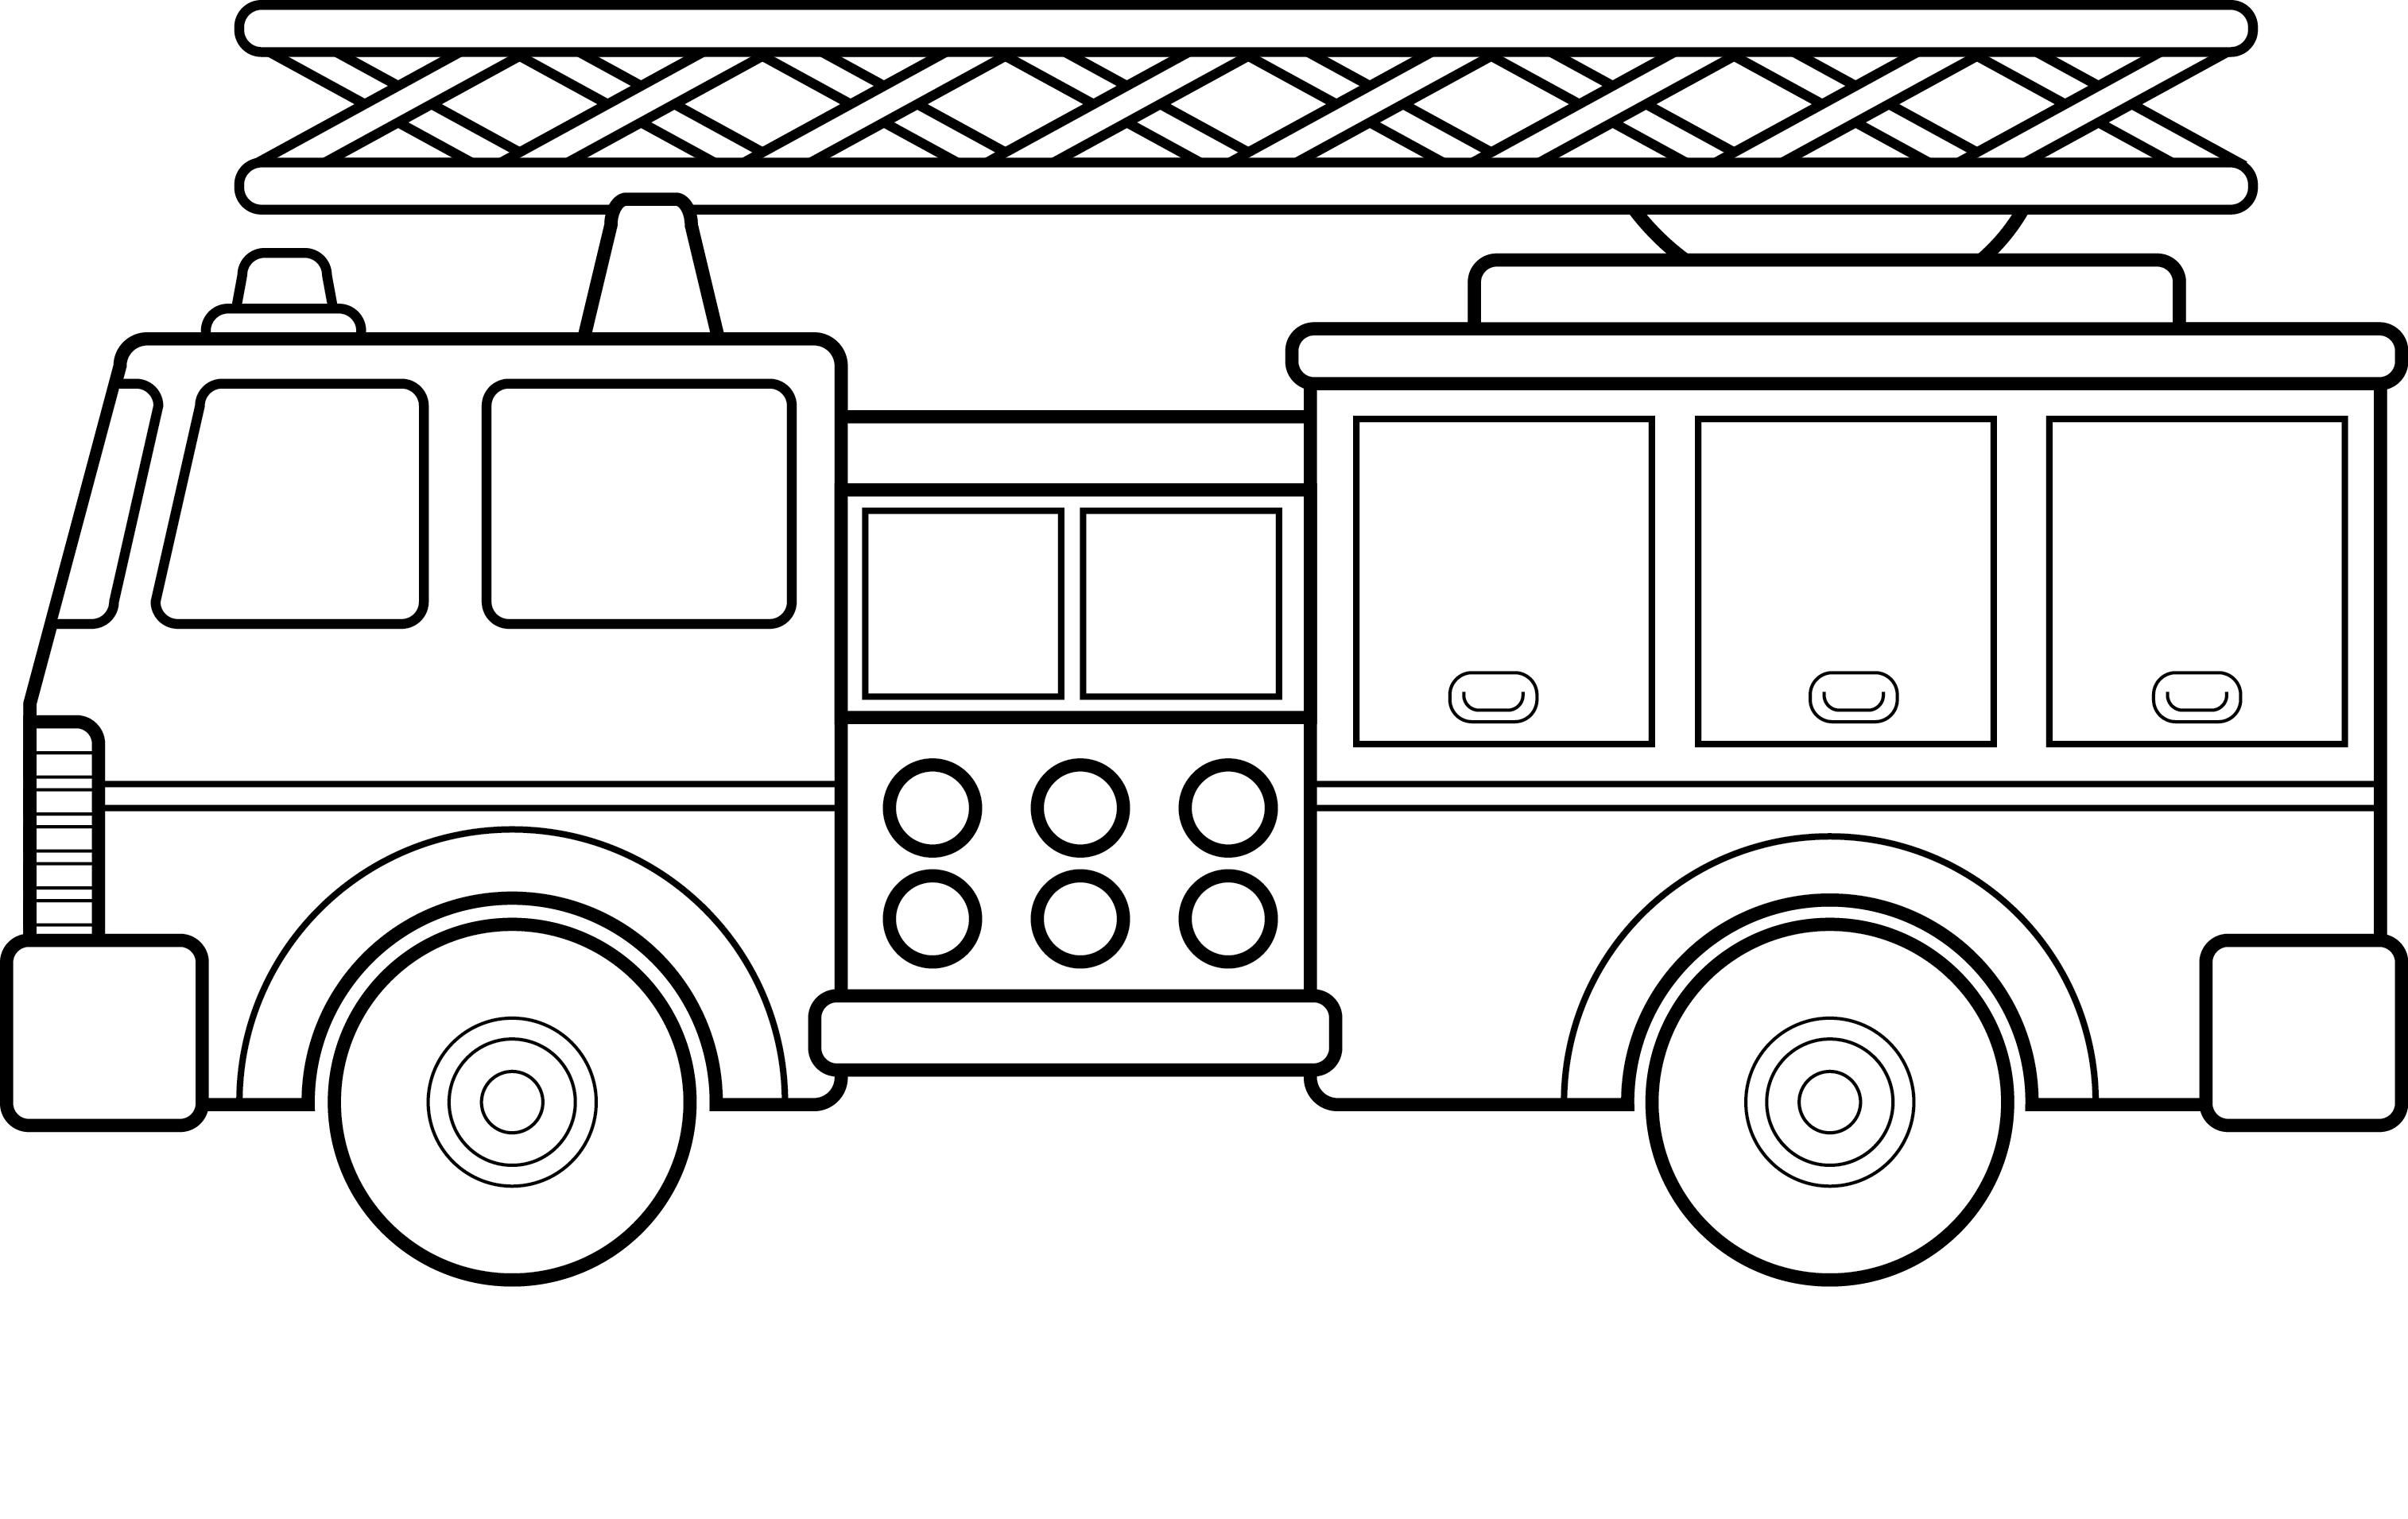 51 Coloring Page Truck Monster Truck Coloring Pages Cars Coloring Pages Firetruck Coloring Page